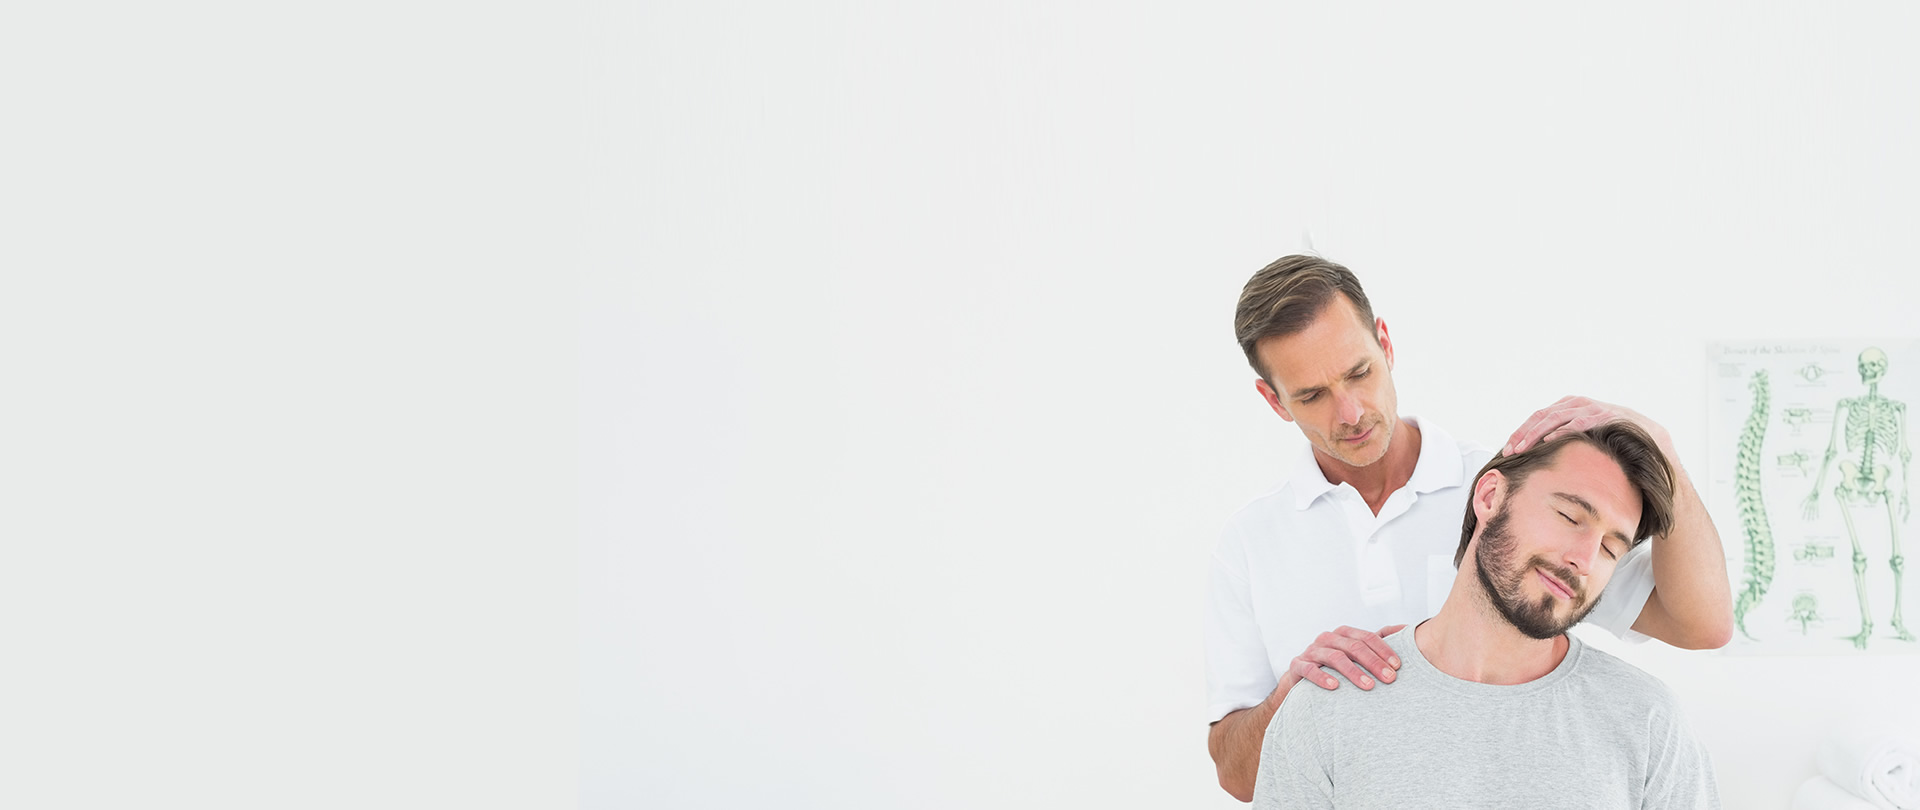 How Can Chiropractic Help Me?